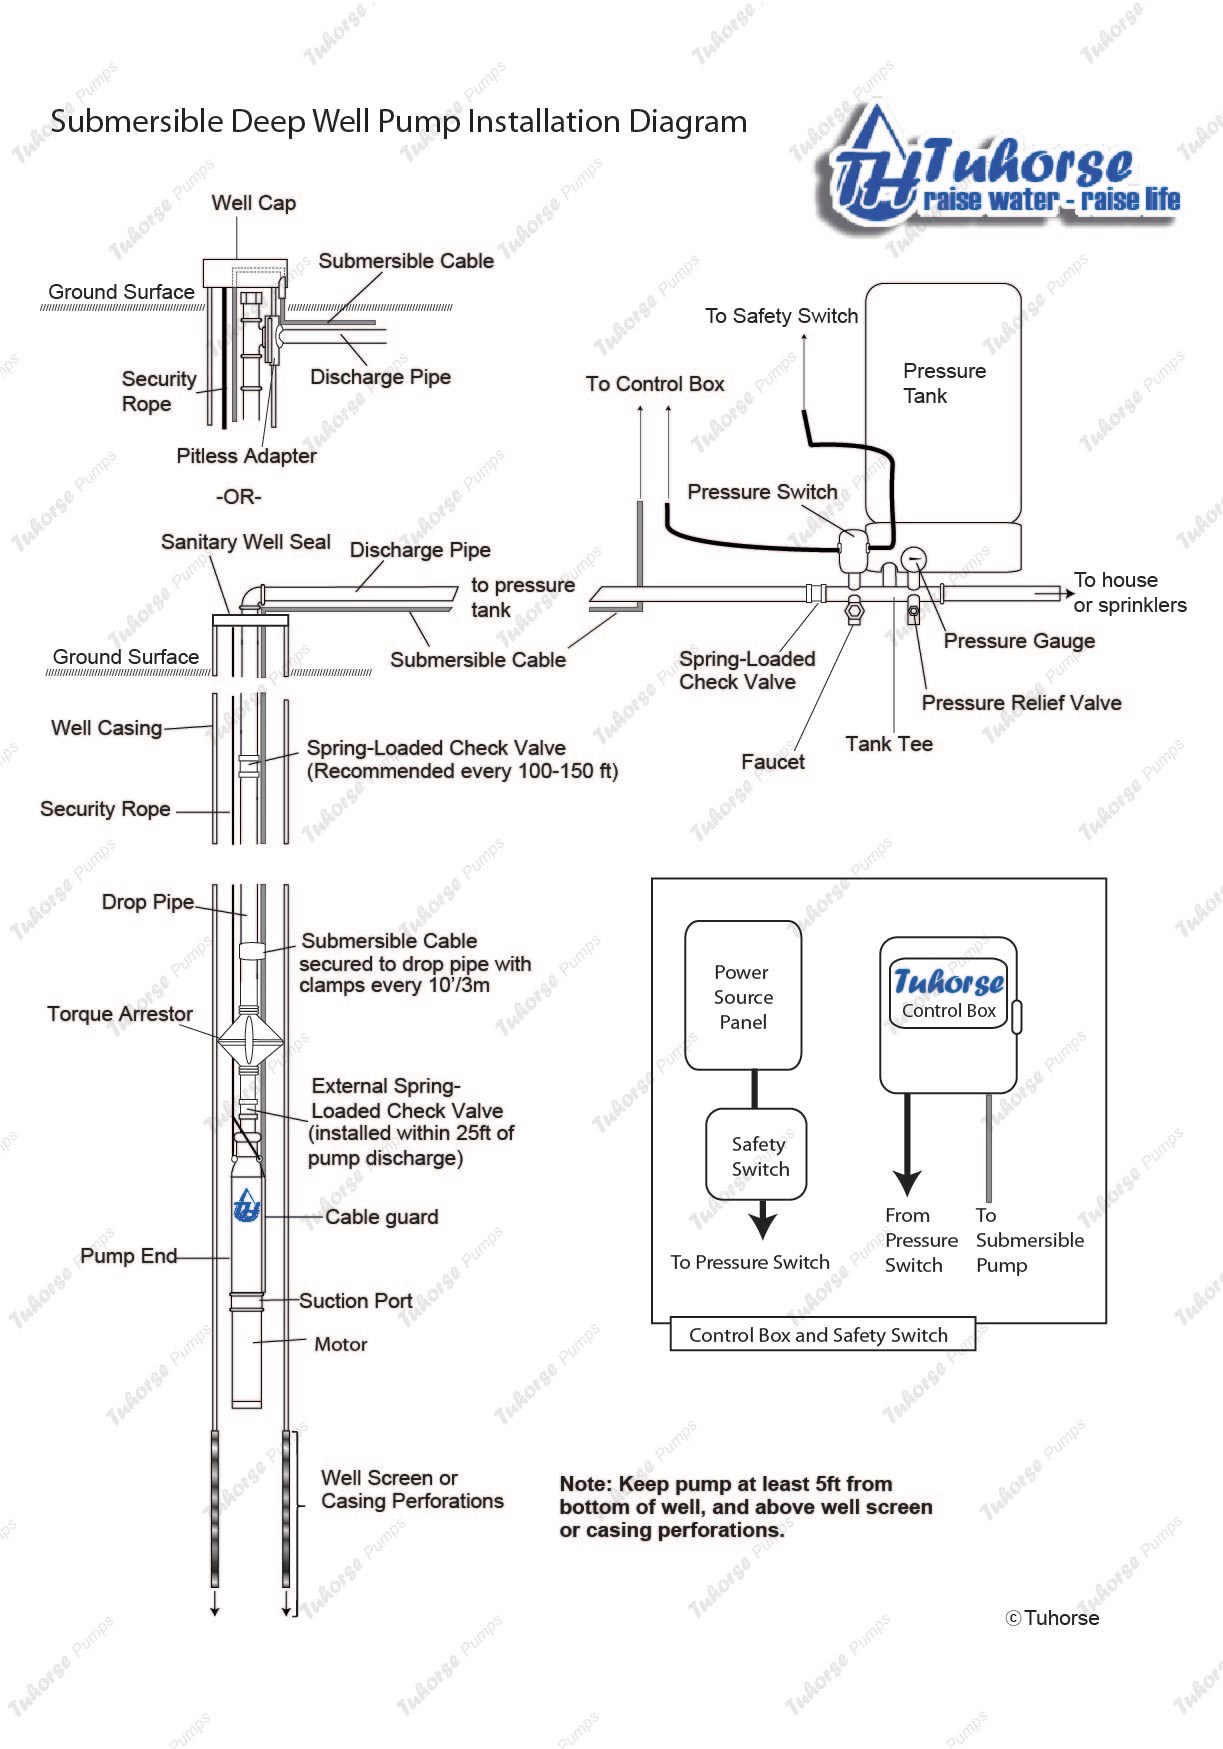 submersible well pump control box wiring diagram cat5 wire installation